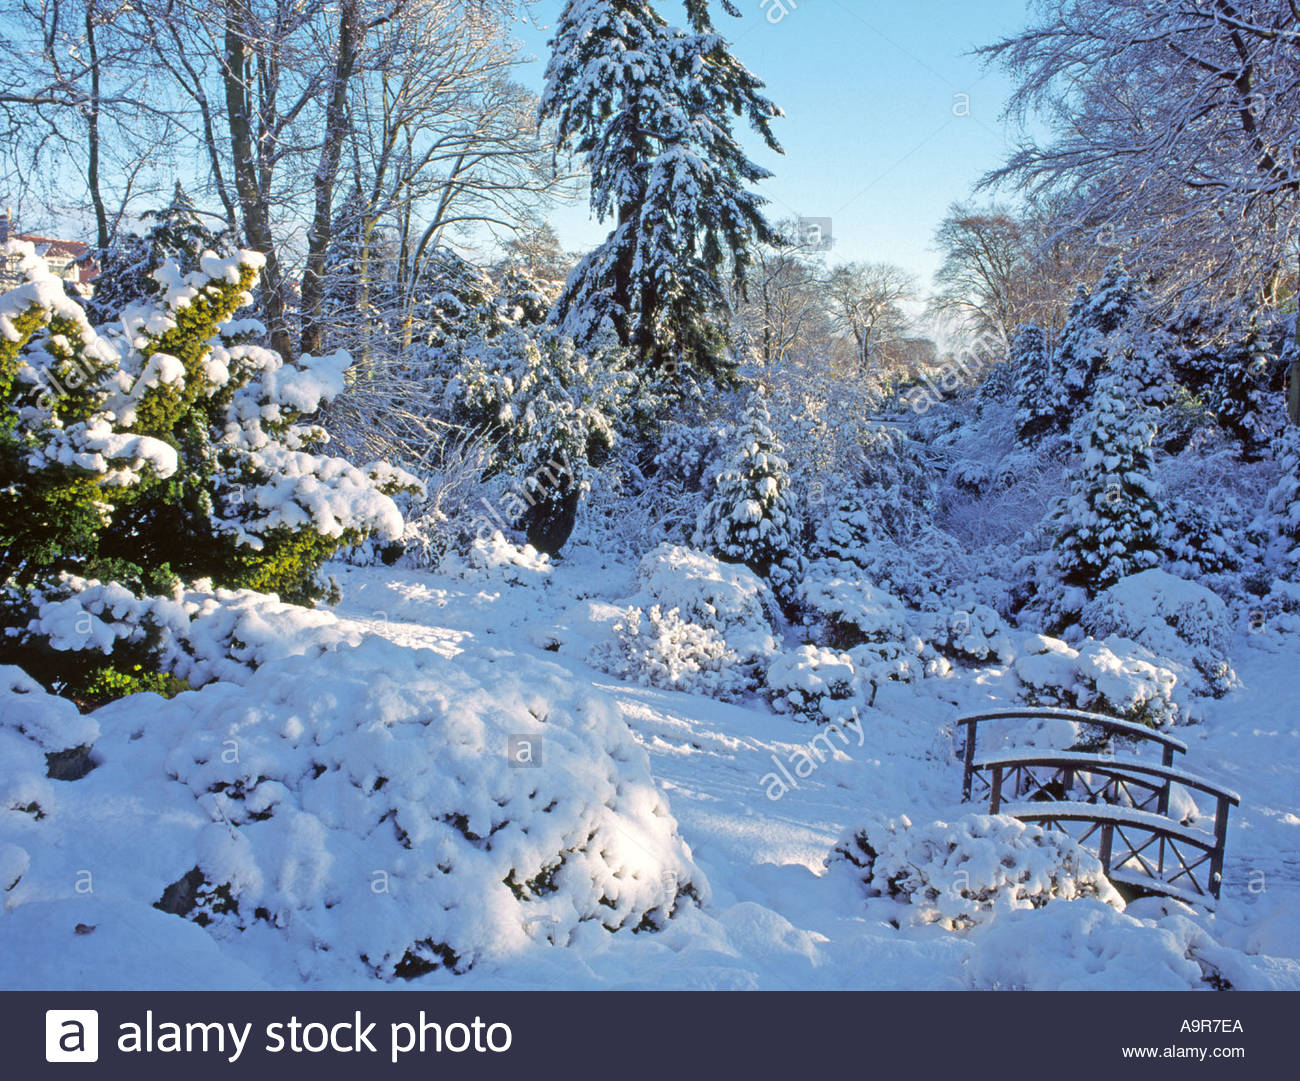 johnston gardens aberdeen city and rare fall of fresh snow giving